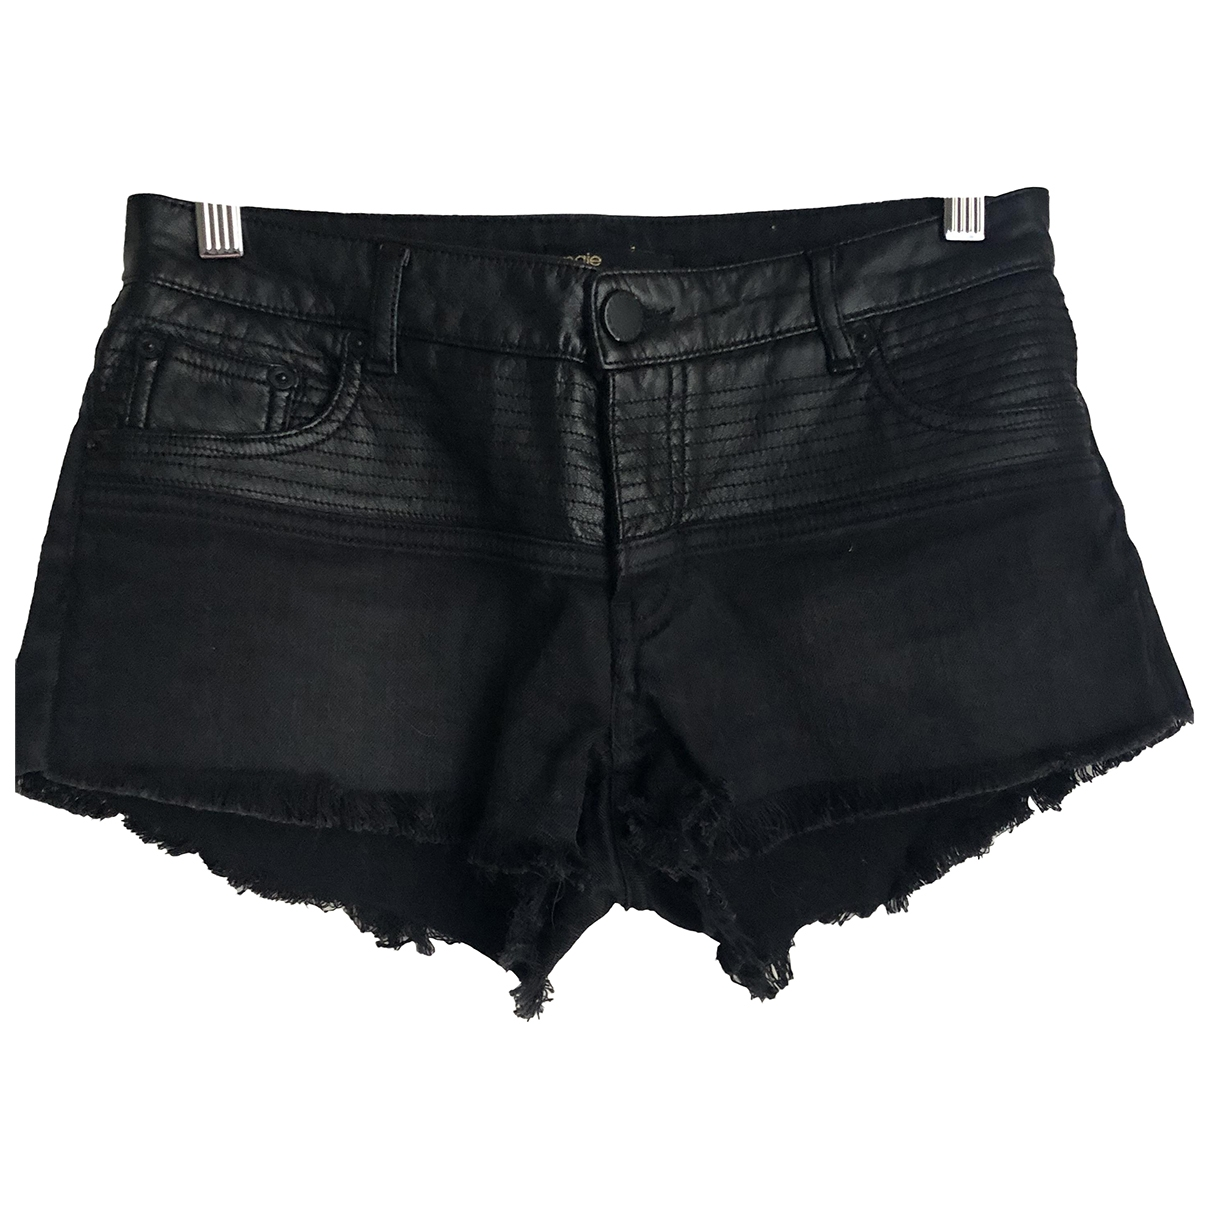 Maje \N Black Cotton Shorts for Women S International